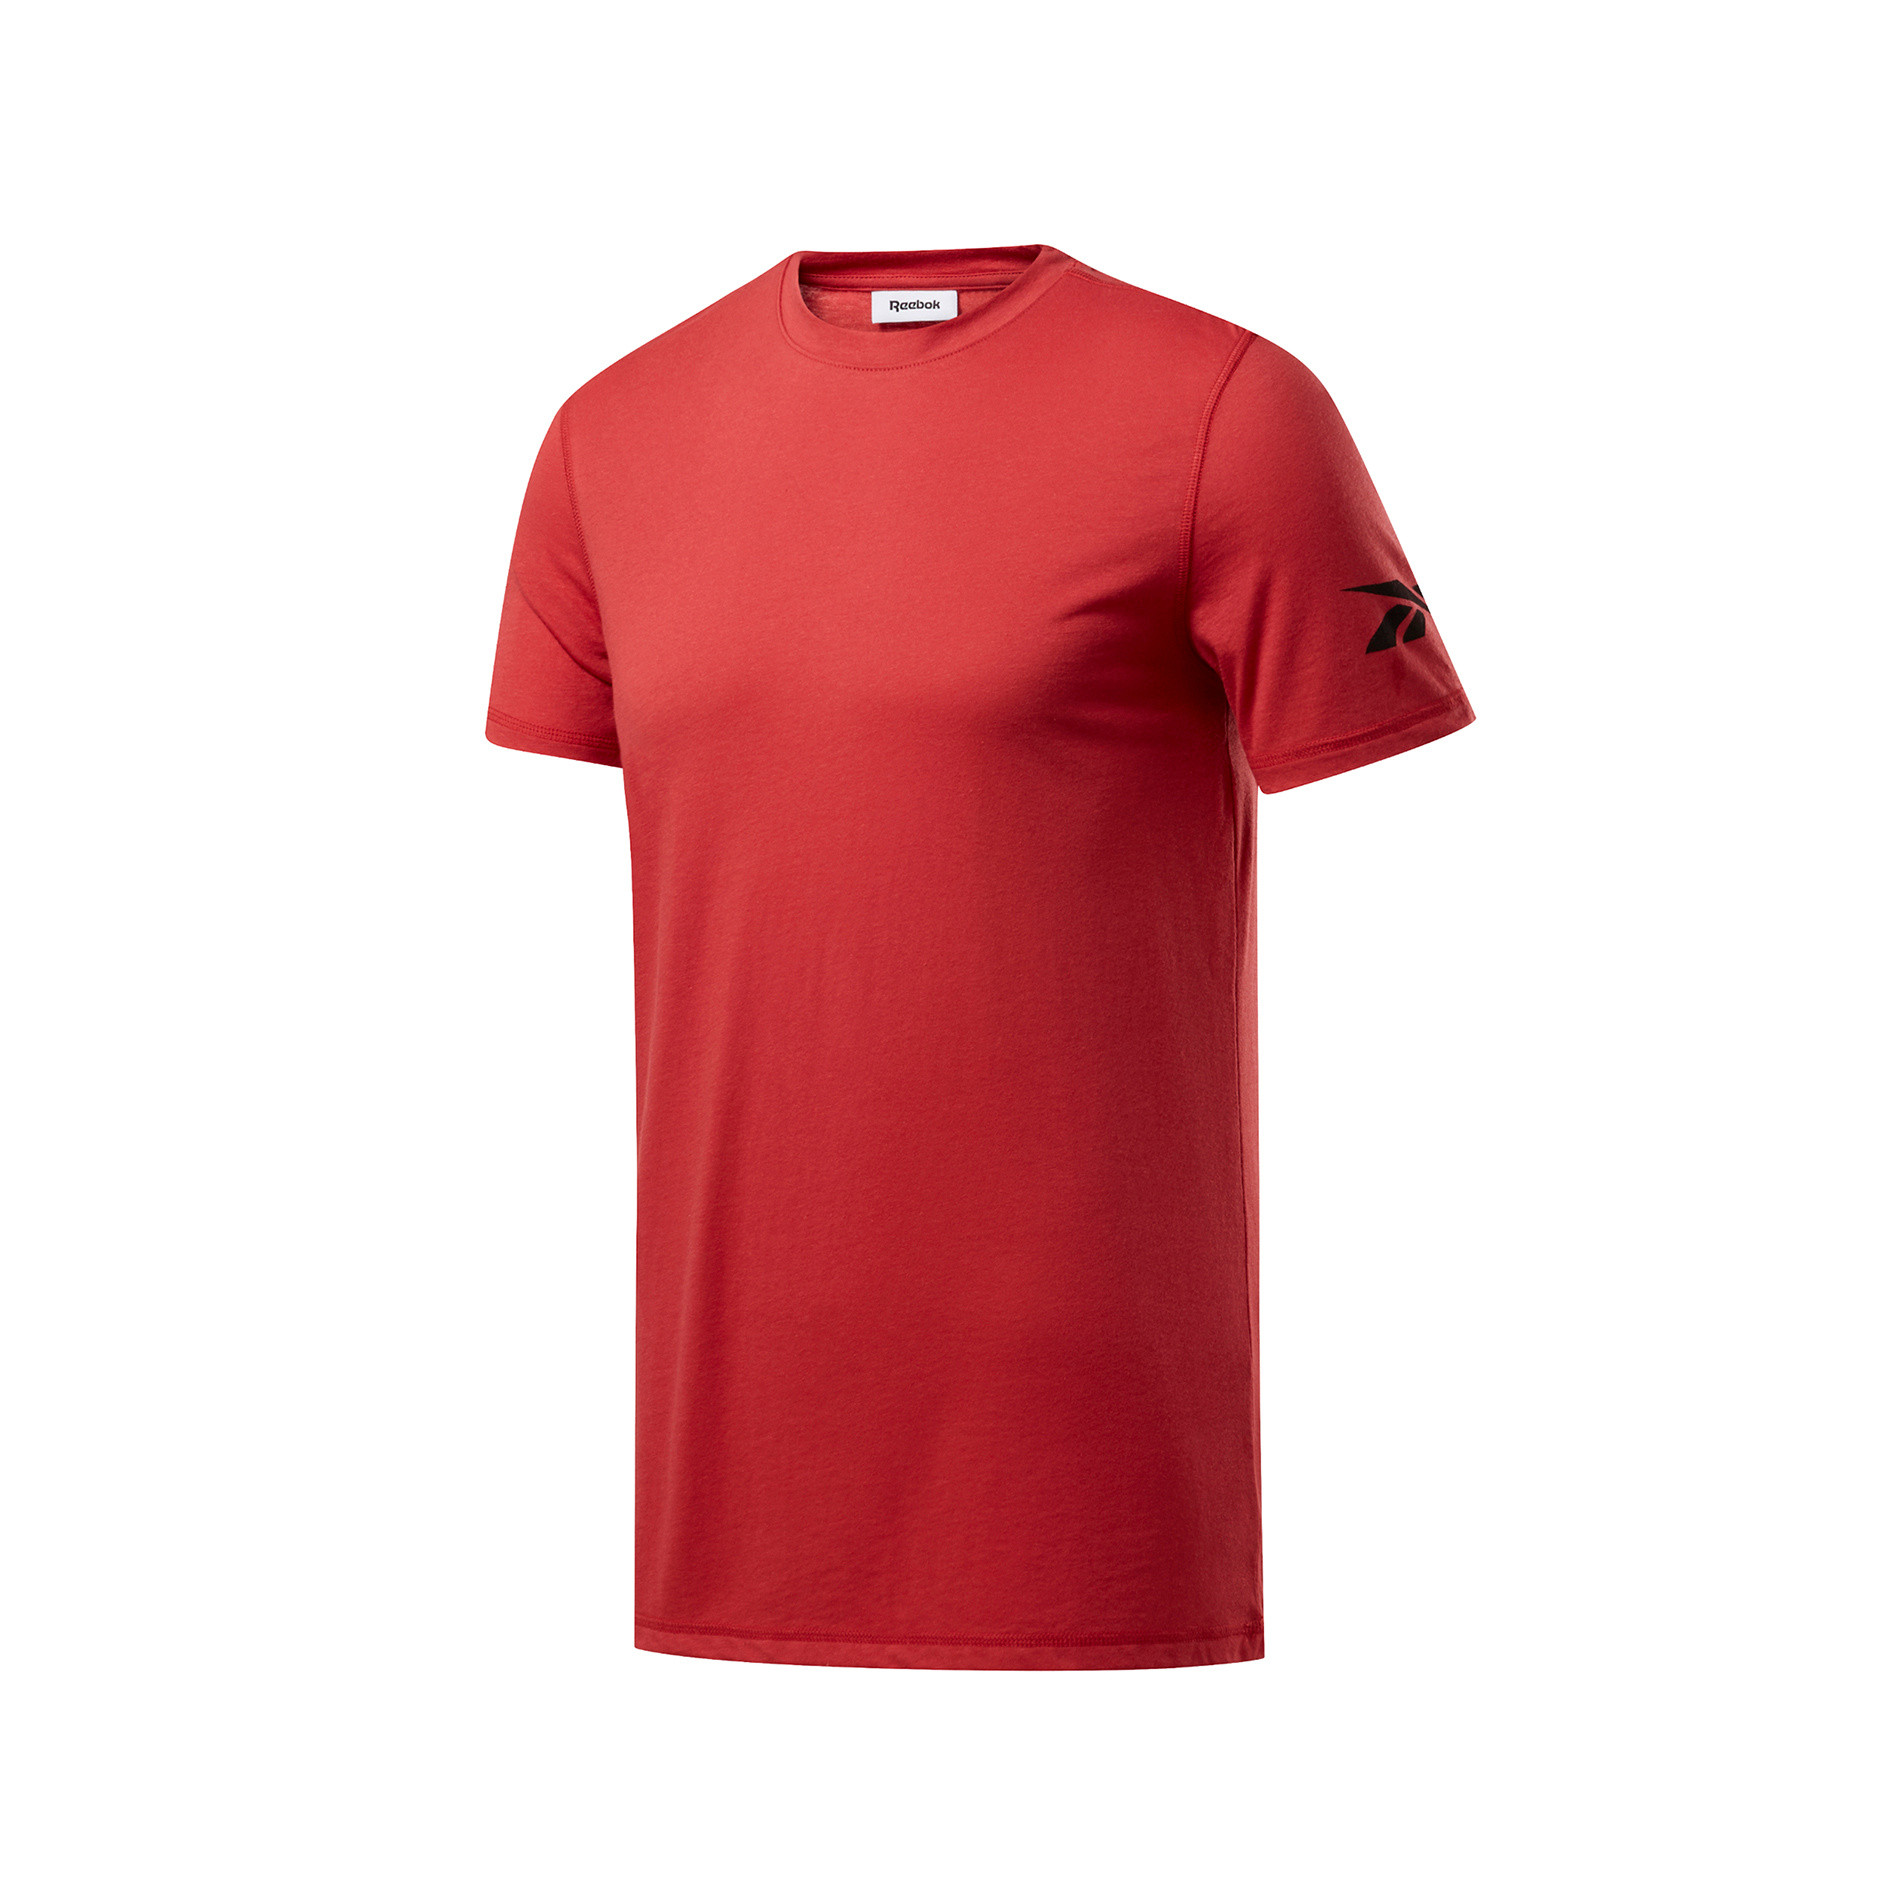 T-shirt workout jersey tech, Rosso, large image number 0